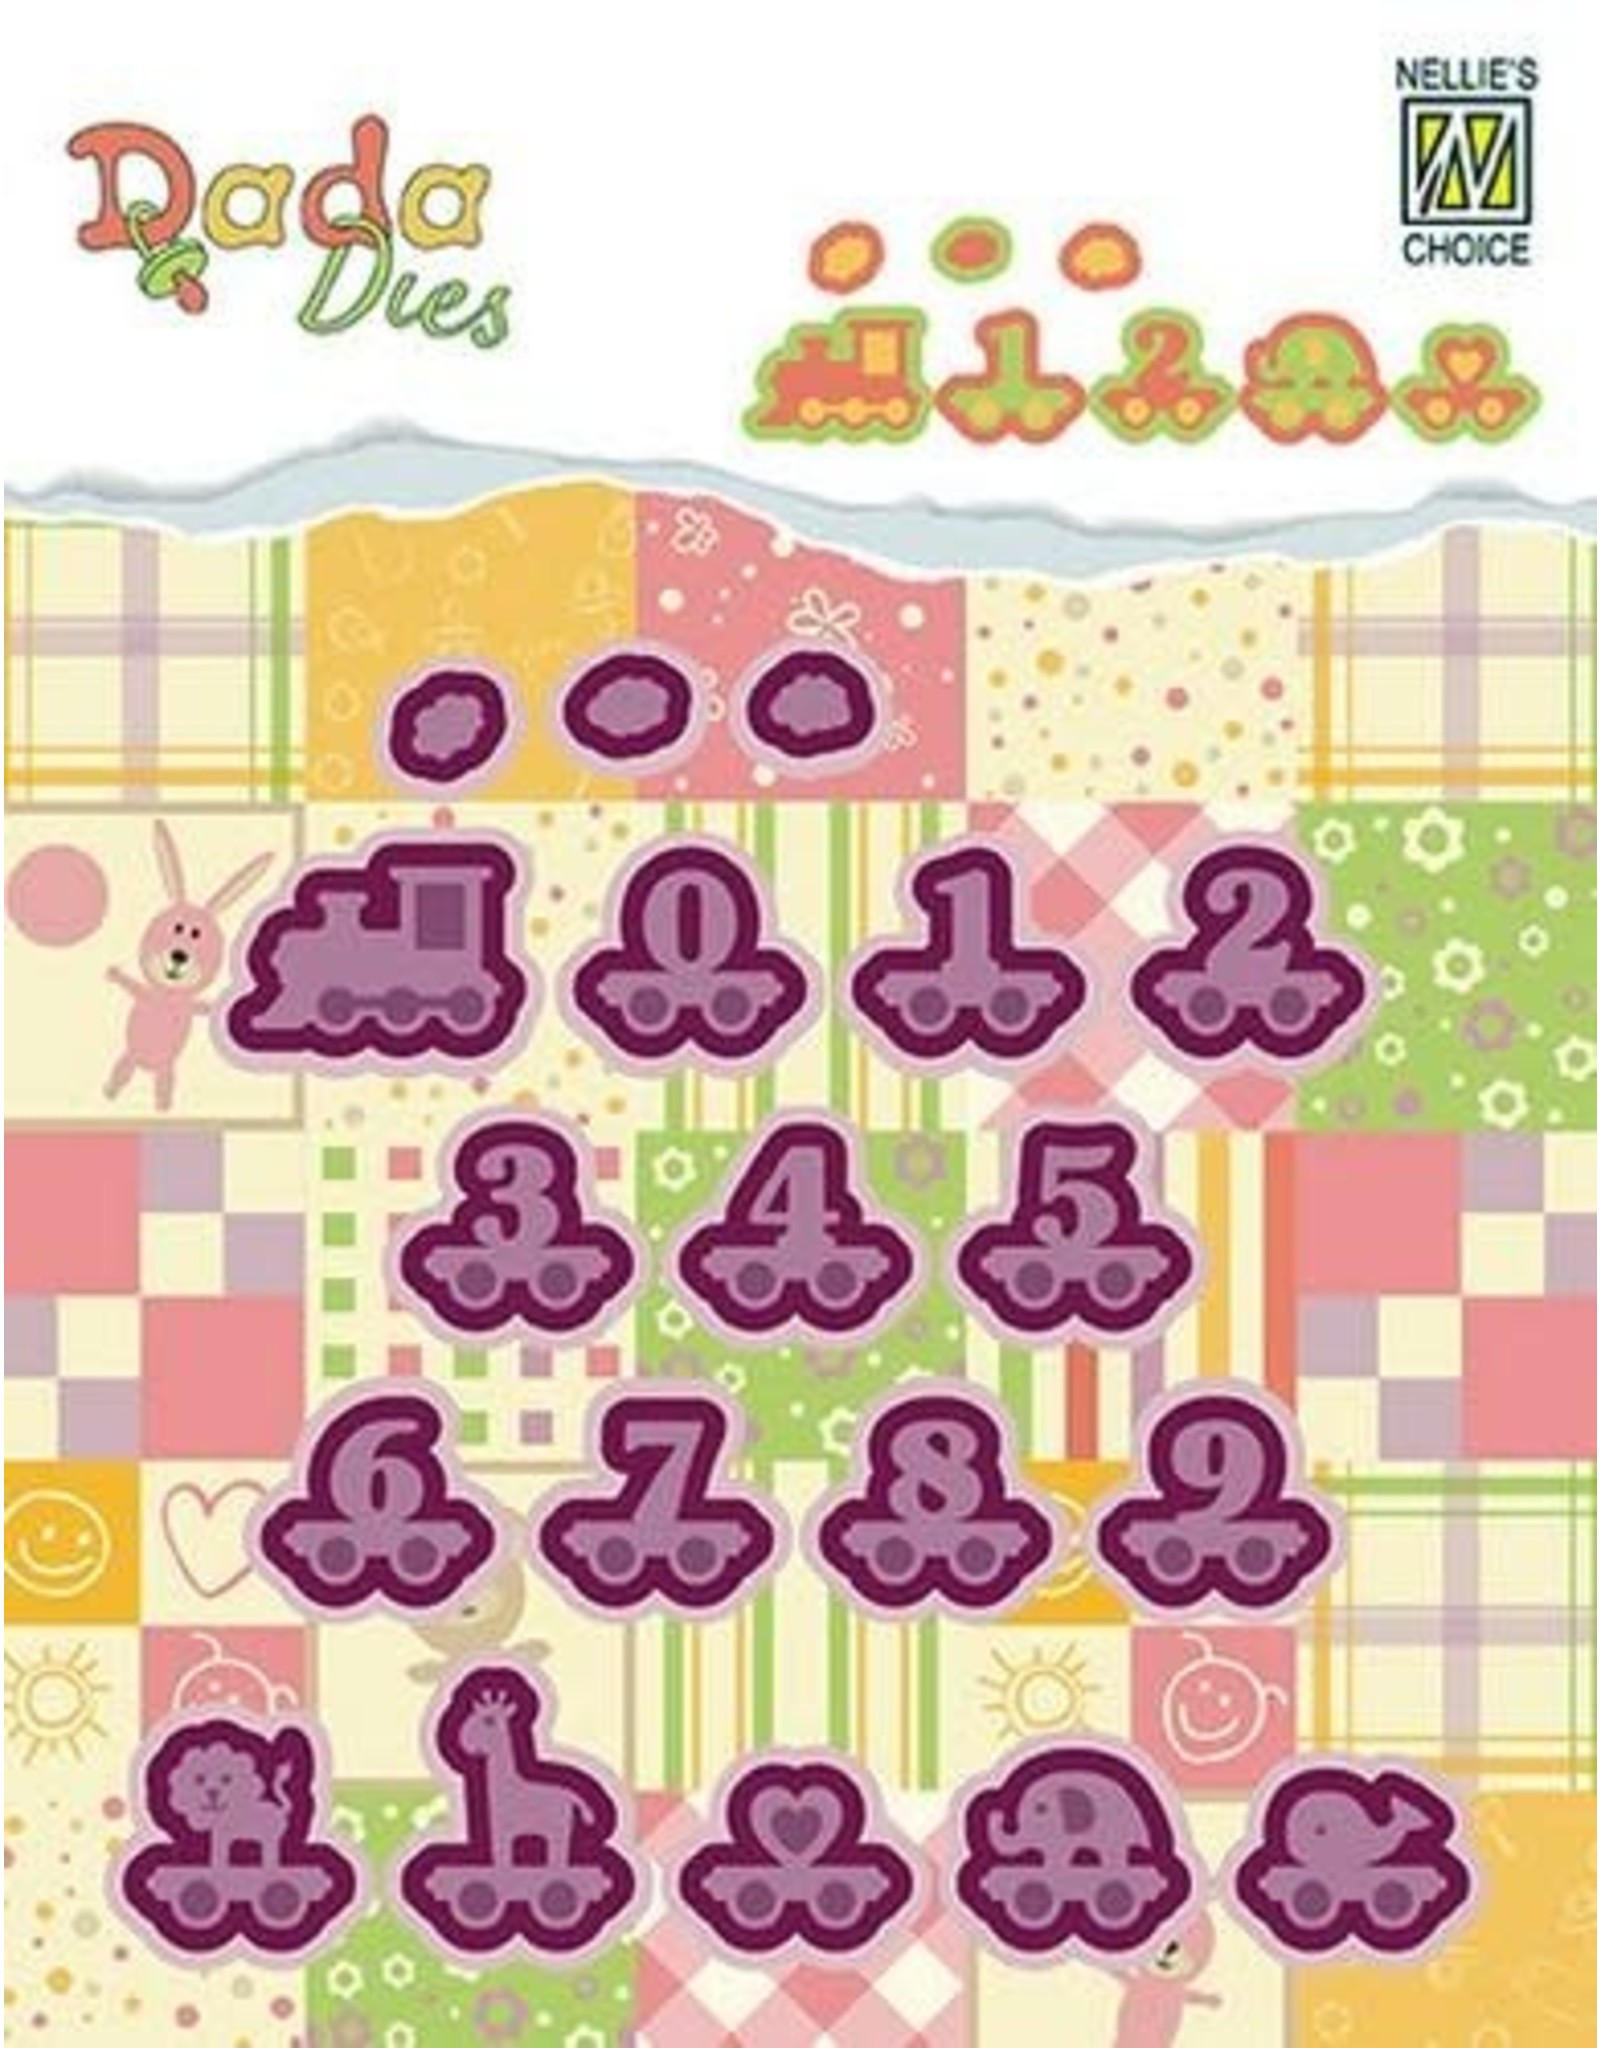 Nellie's Choice Nellies Choice DADA Baby Die - alphabet train numbers DDD006 20mm high/pcs